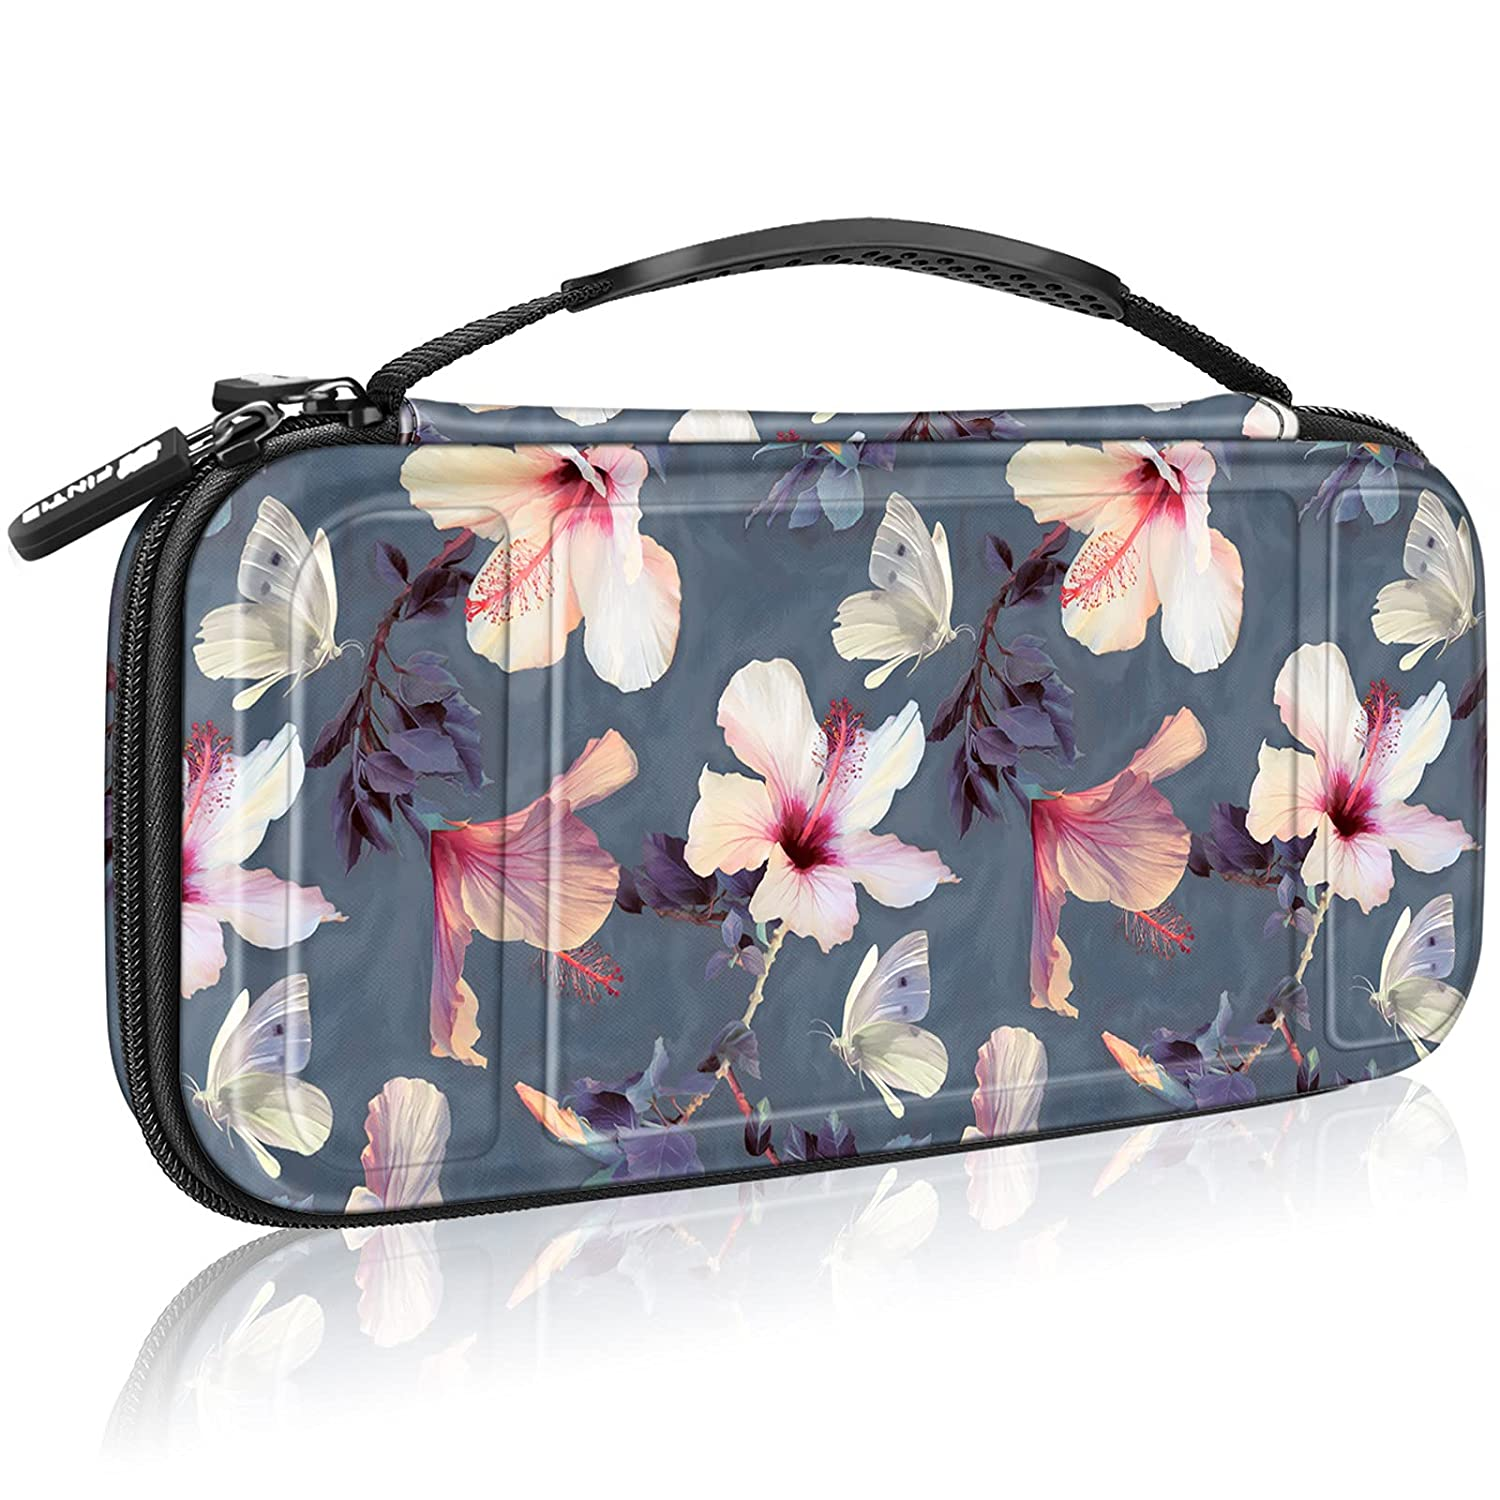 Fintie Carry Case for Nintendo Shell Hard OFFicial Max 51% OFF mail order Switch - Shockproof